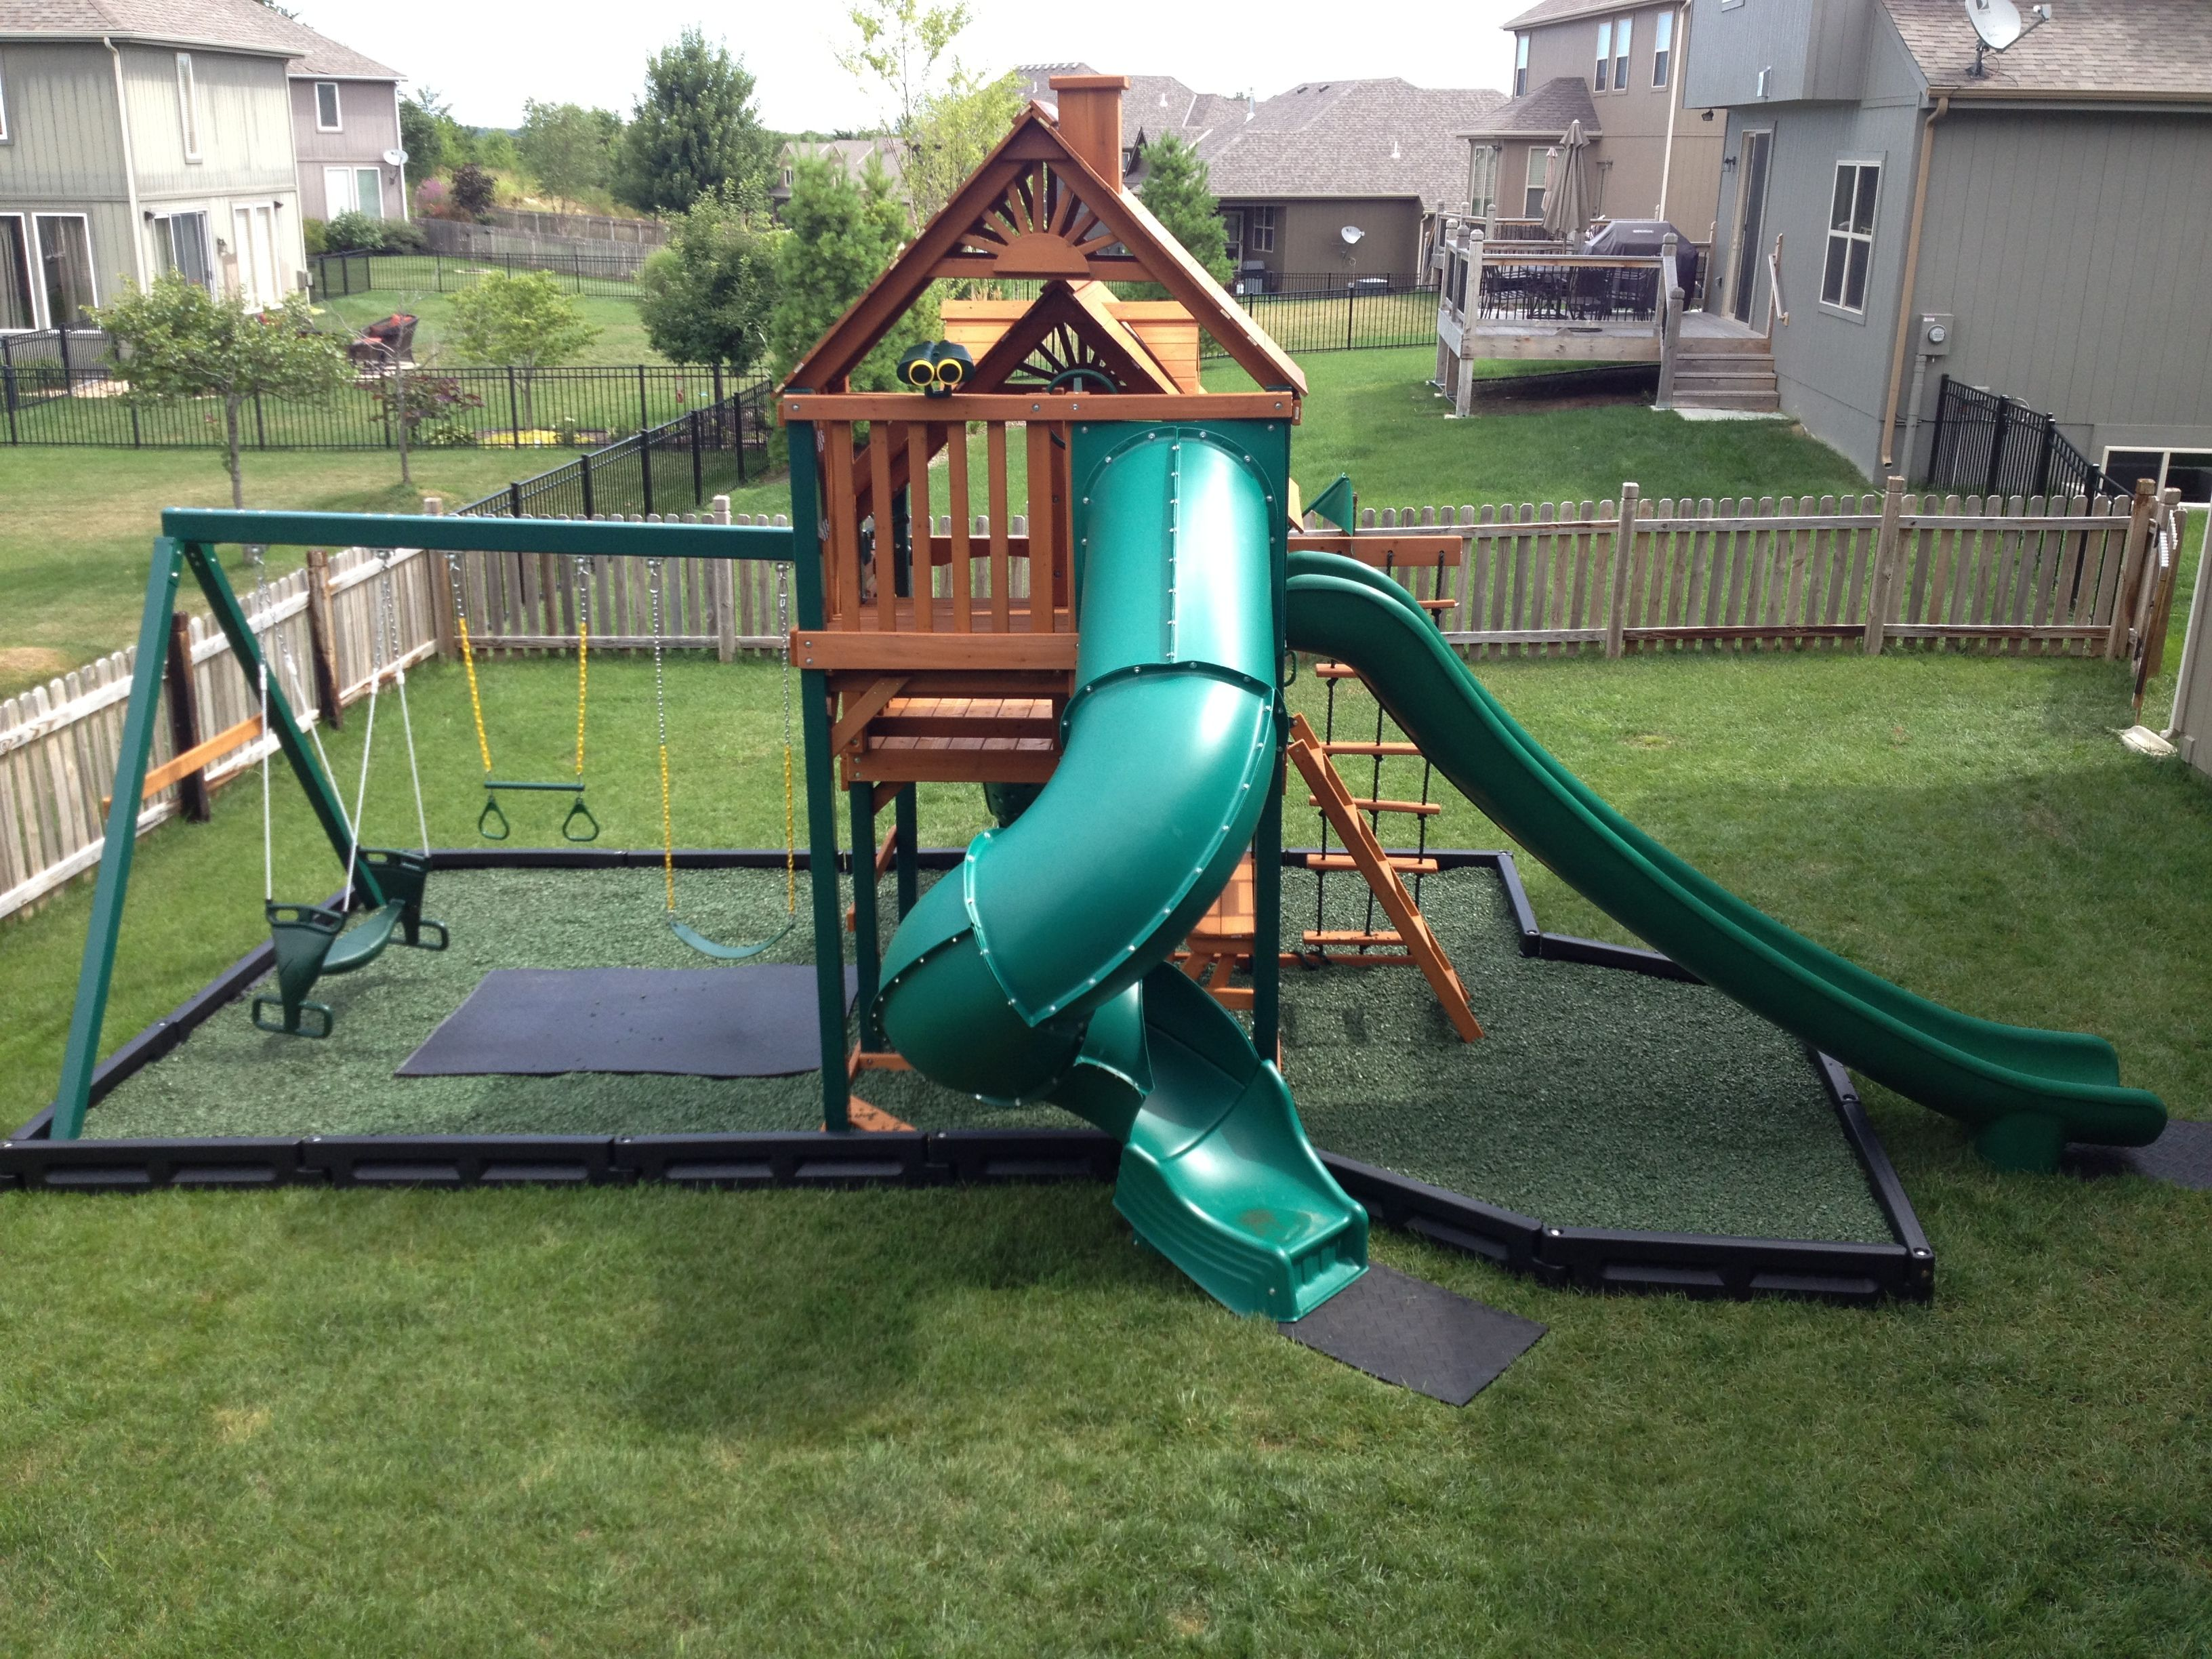 Safe backyard fun Our green rubber mulch matches the color of